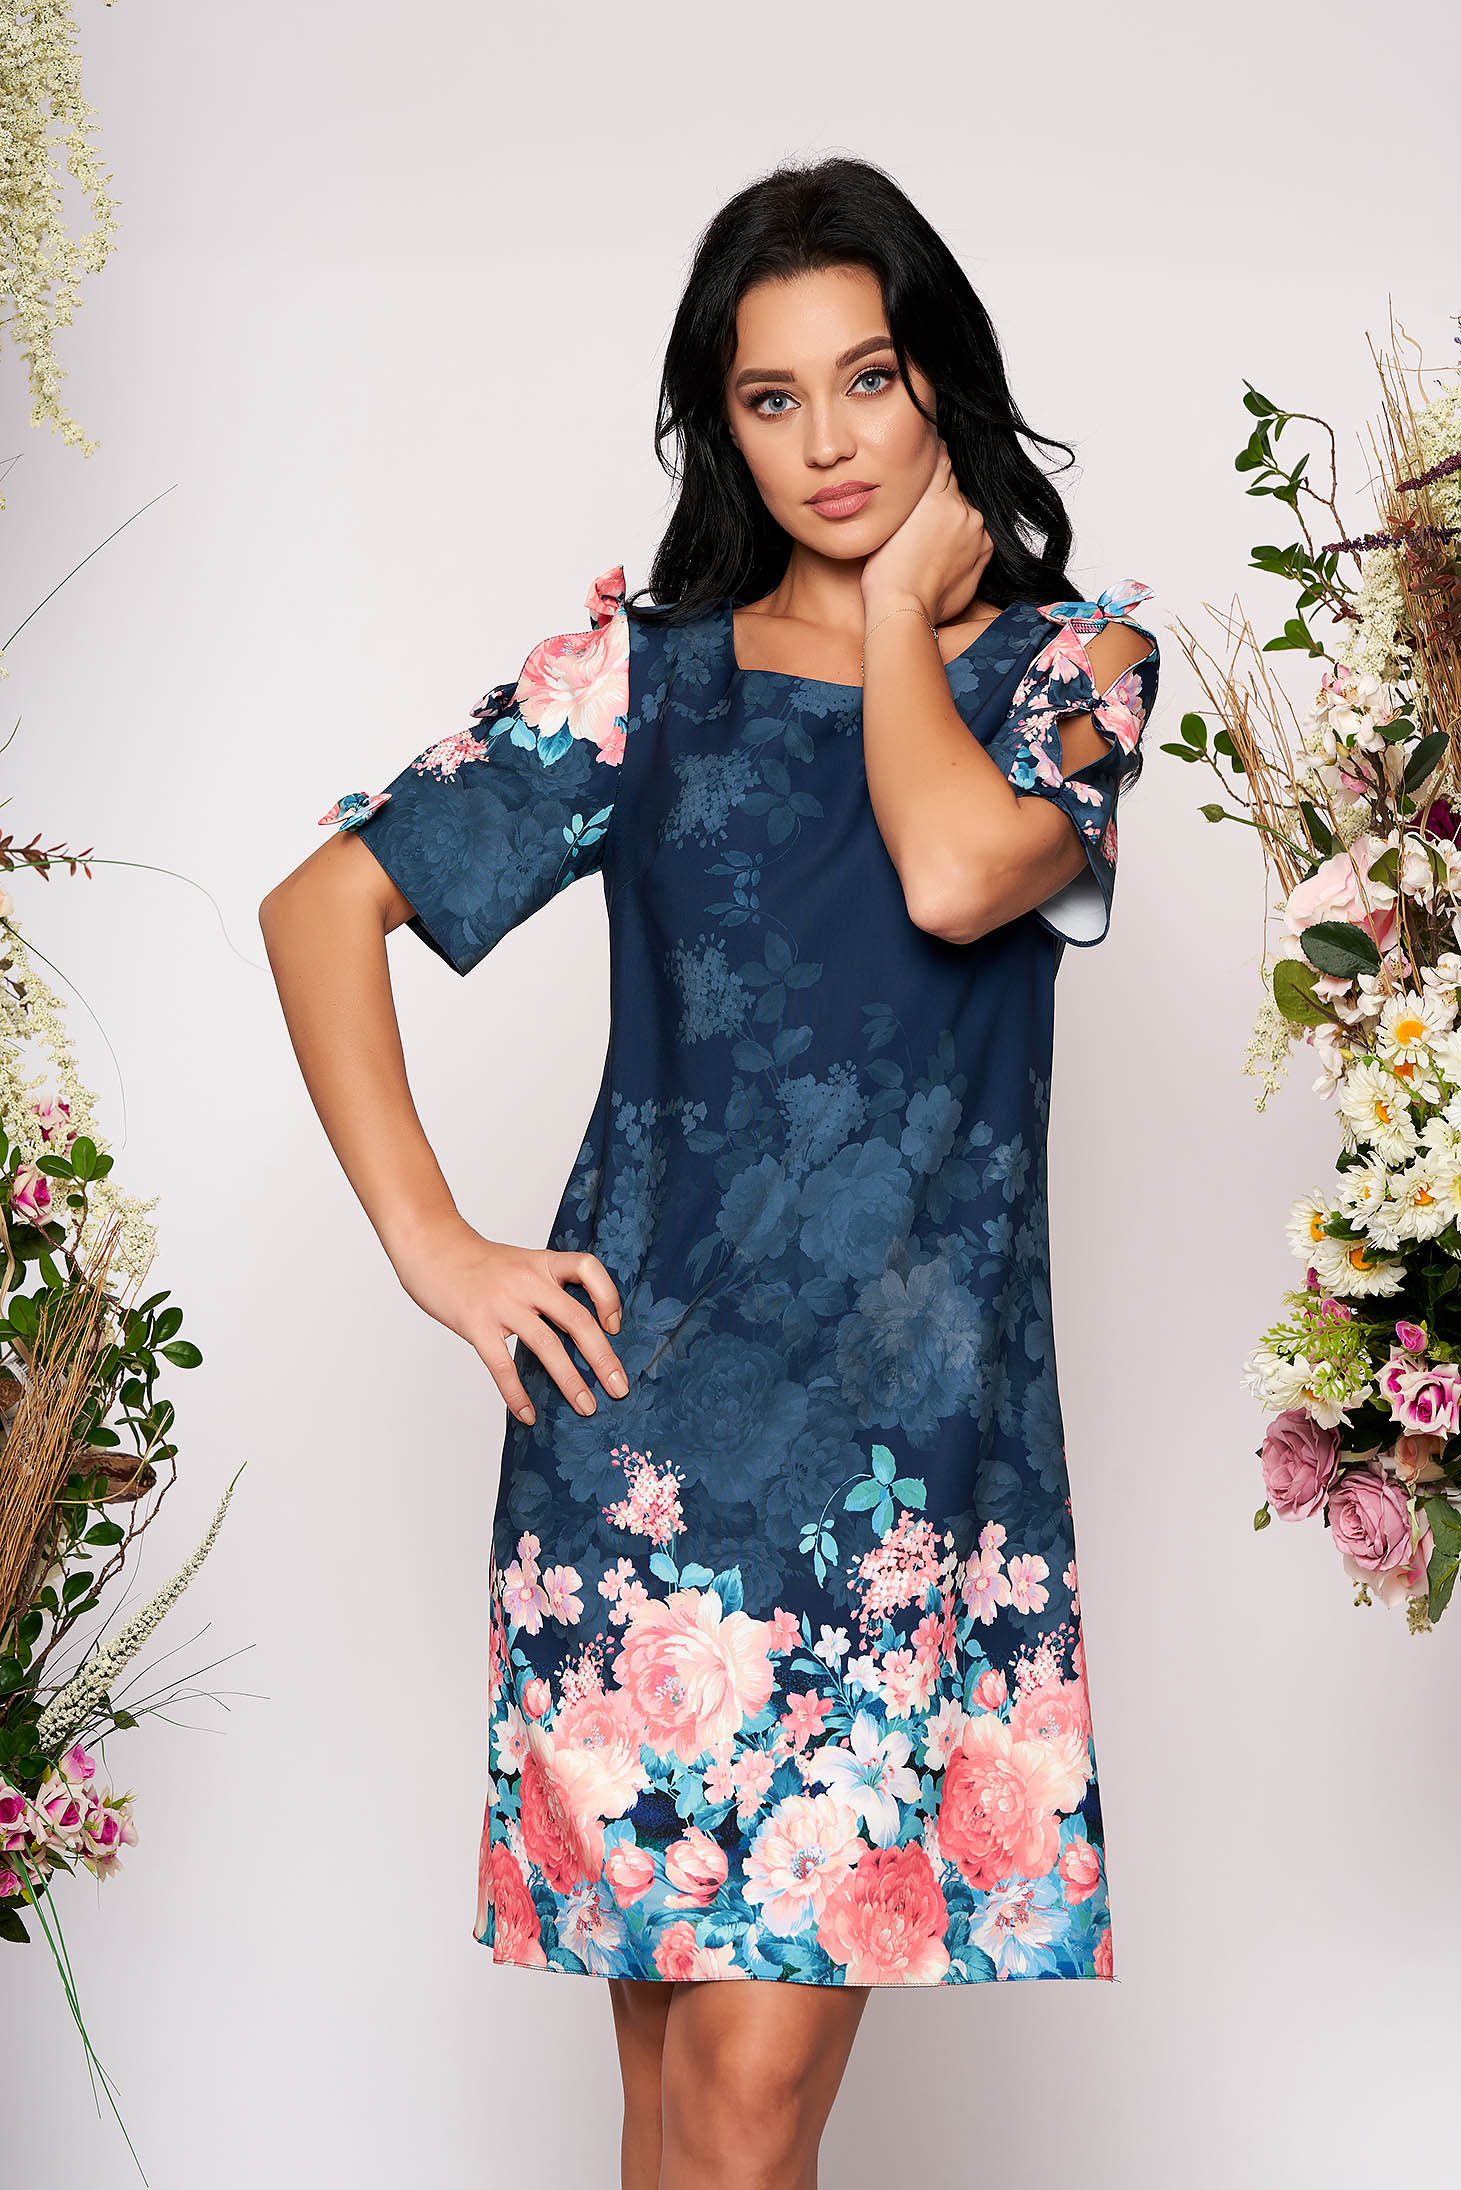 Darkblue short cut flared elegant daily dress with cut-out sleeves with bow accessories